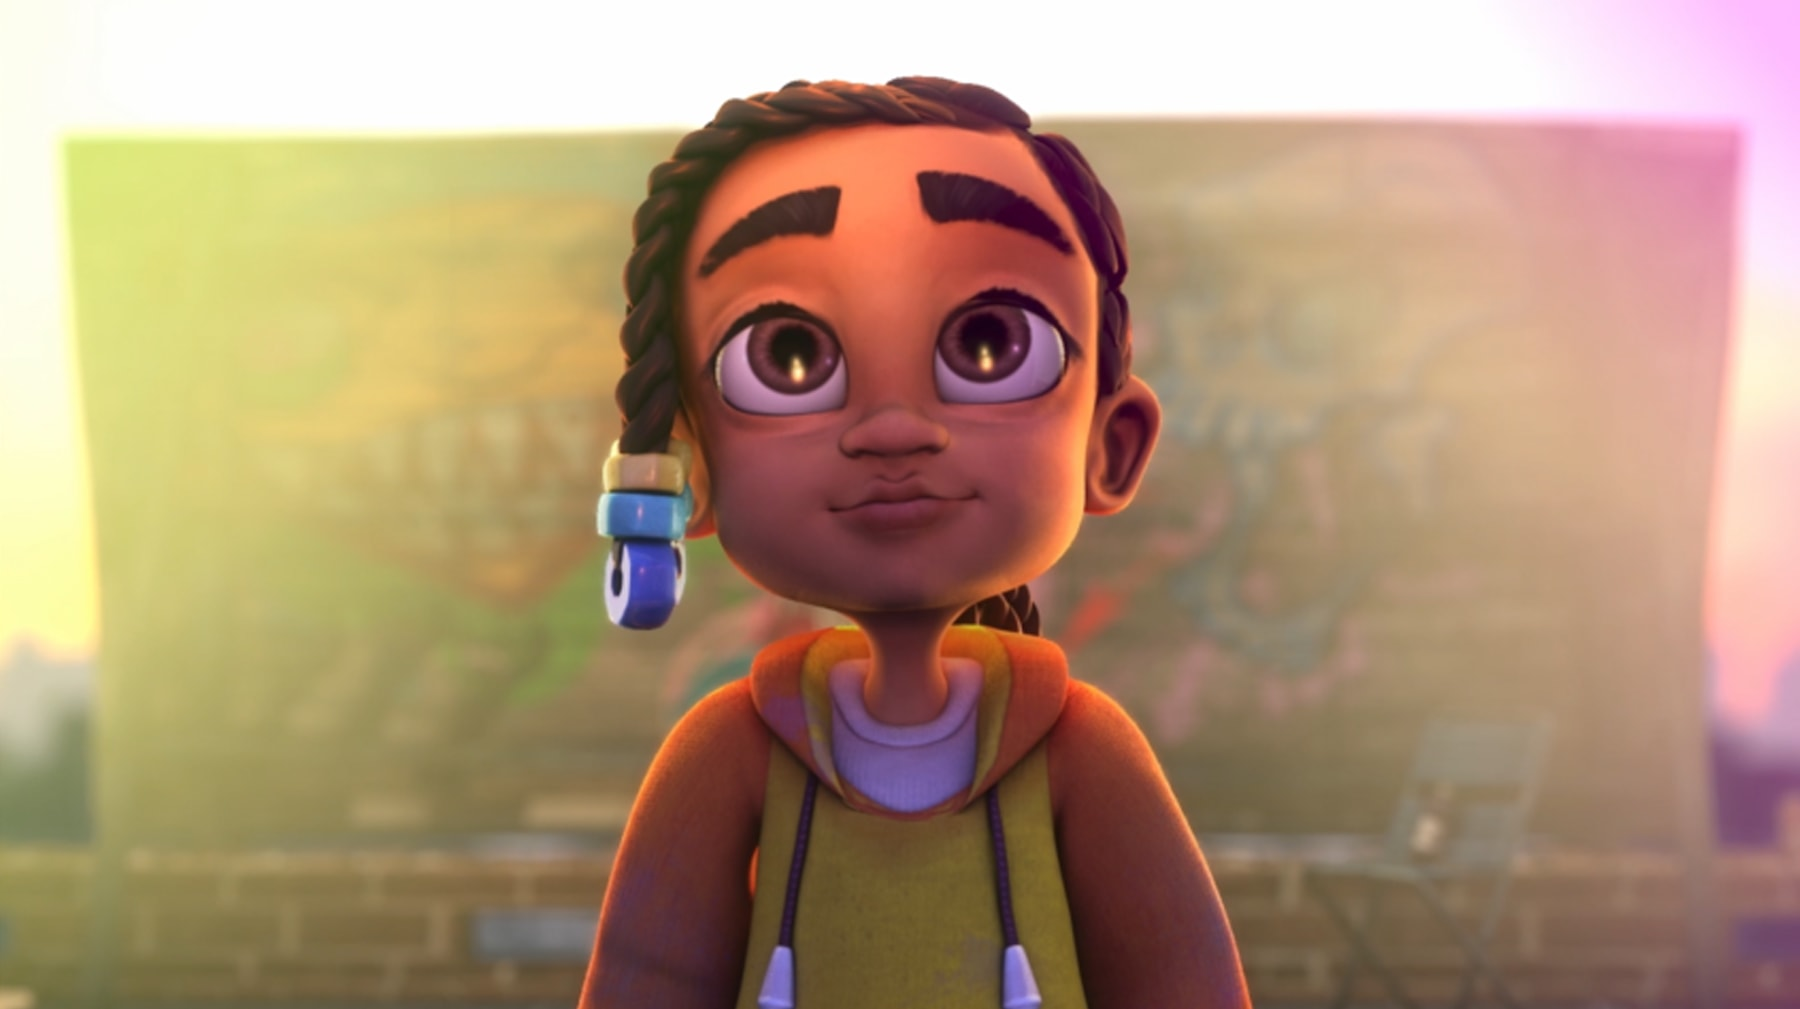 In a still from DigiPen student animation Adija, the title character looks at her artwork proudly